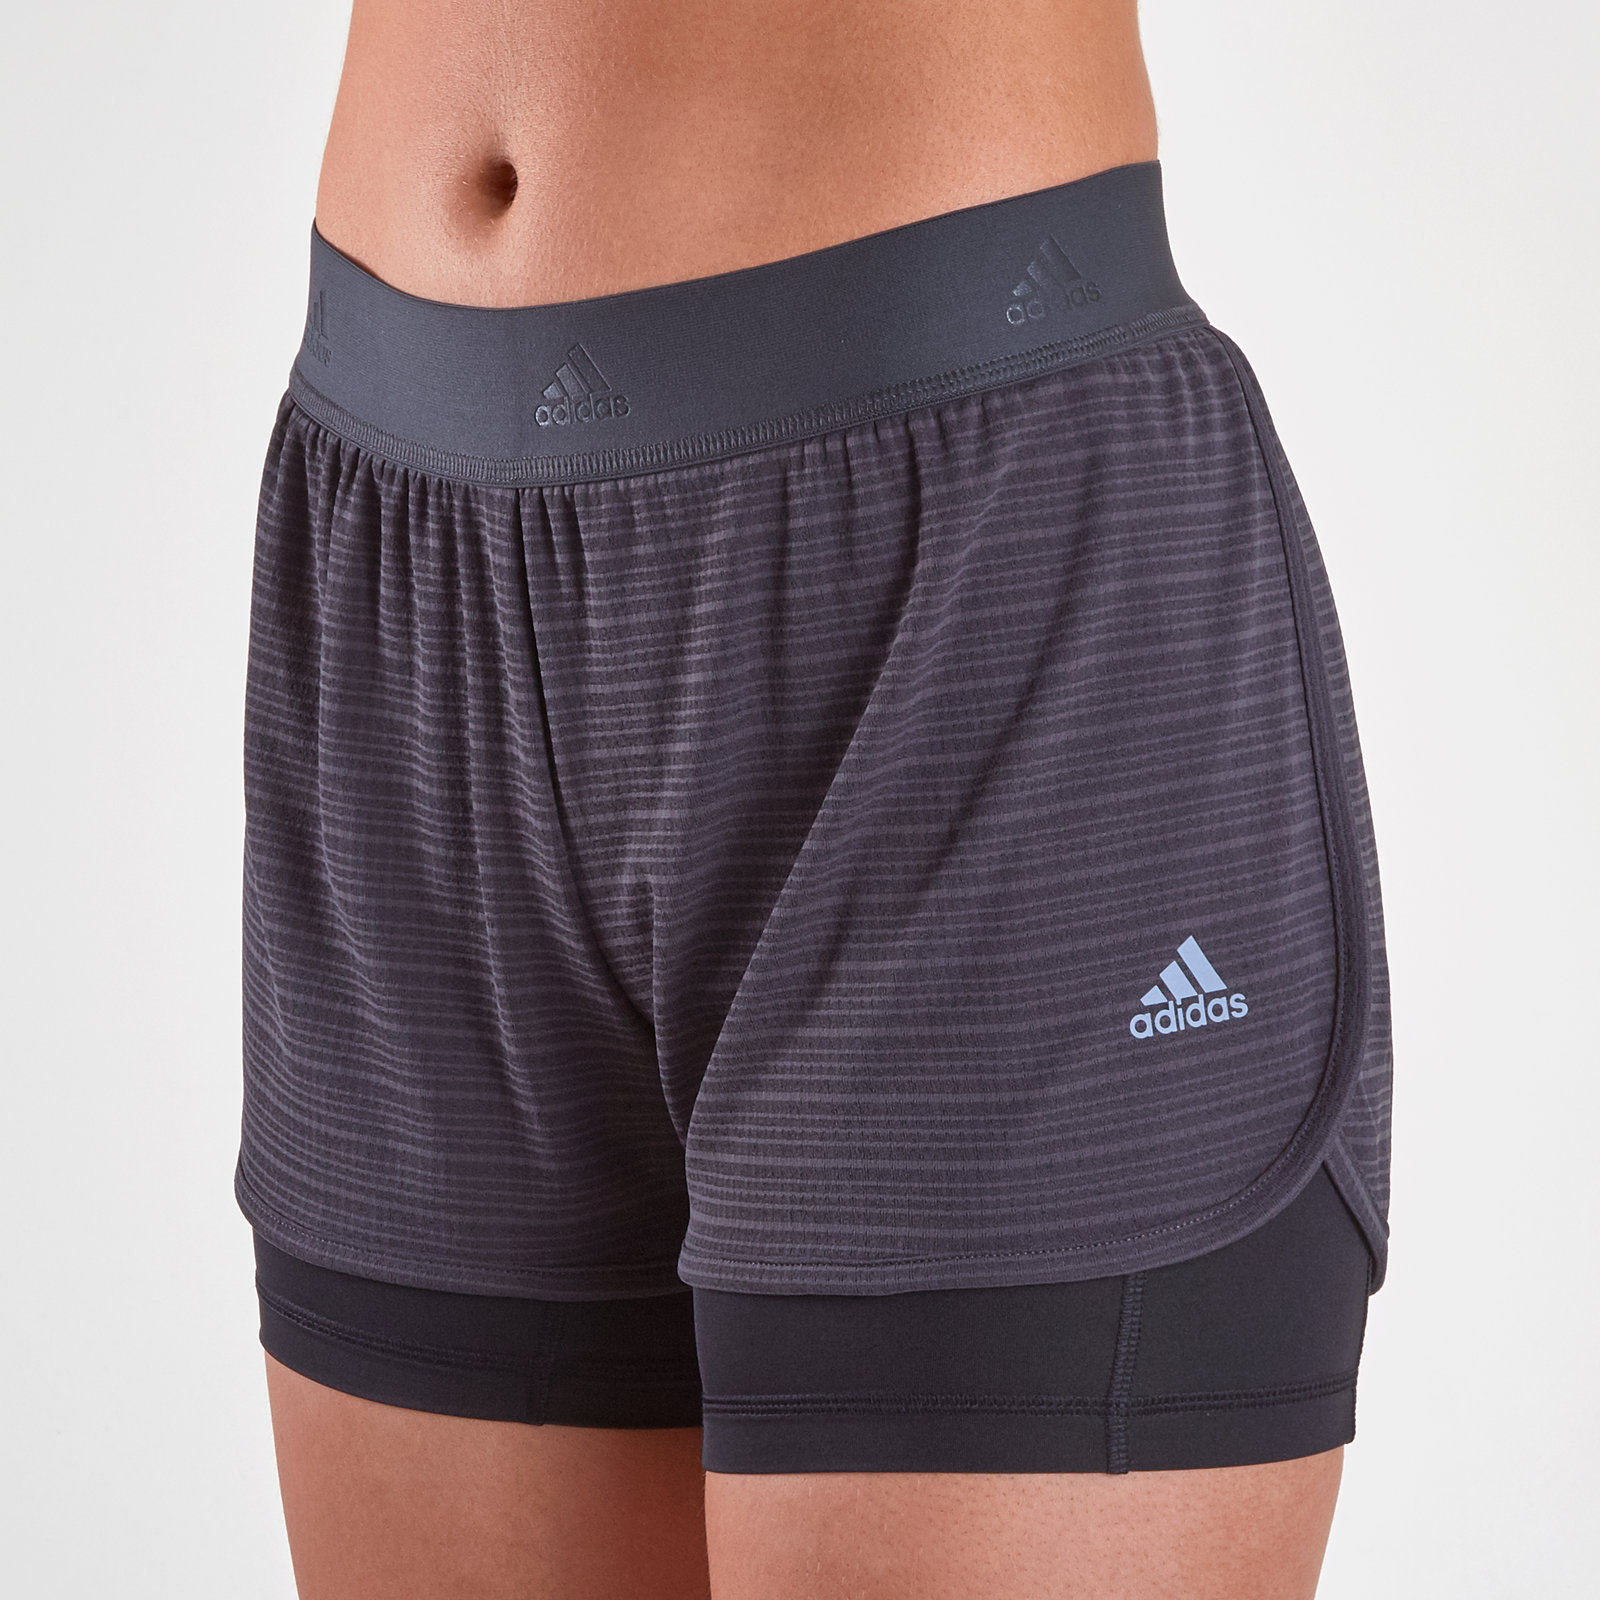 5c3f16e0 Details about adidas Womens ClimaChill 2 In 1 Ladies Shorts Pants Trousers  Bottoms Grey